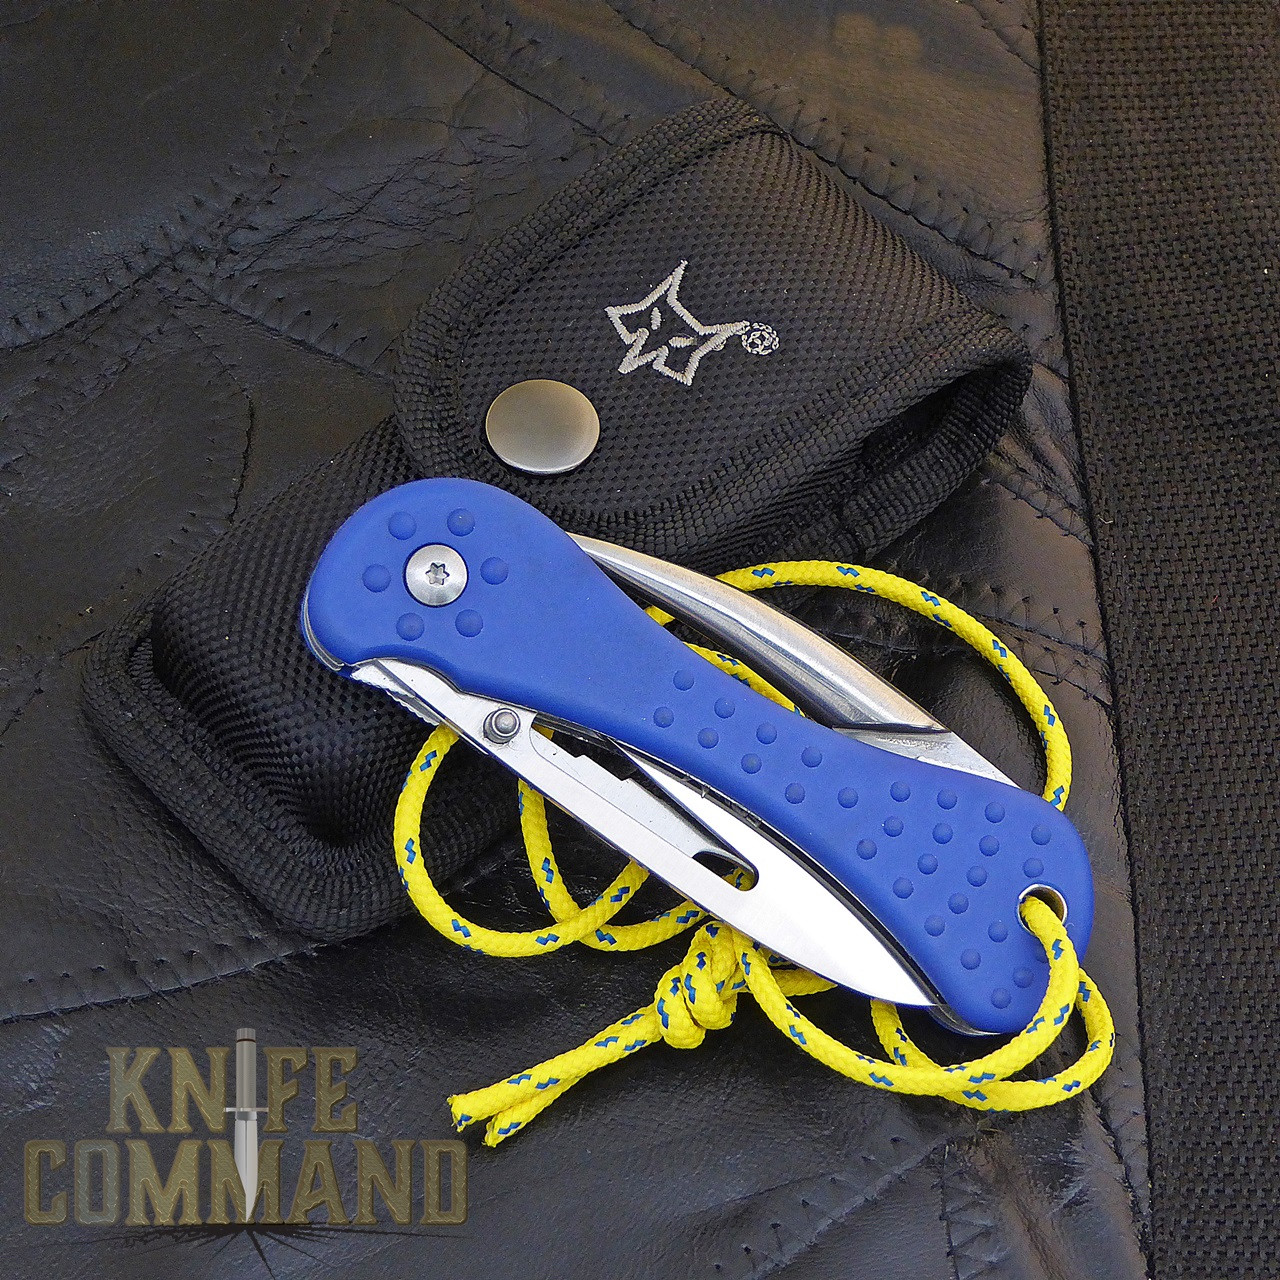 Fox Knives Sailing Knife with Marlin Spike and Multi Tool FX-235.   Folds up and comes with a nice belt sheath.